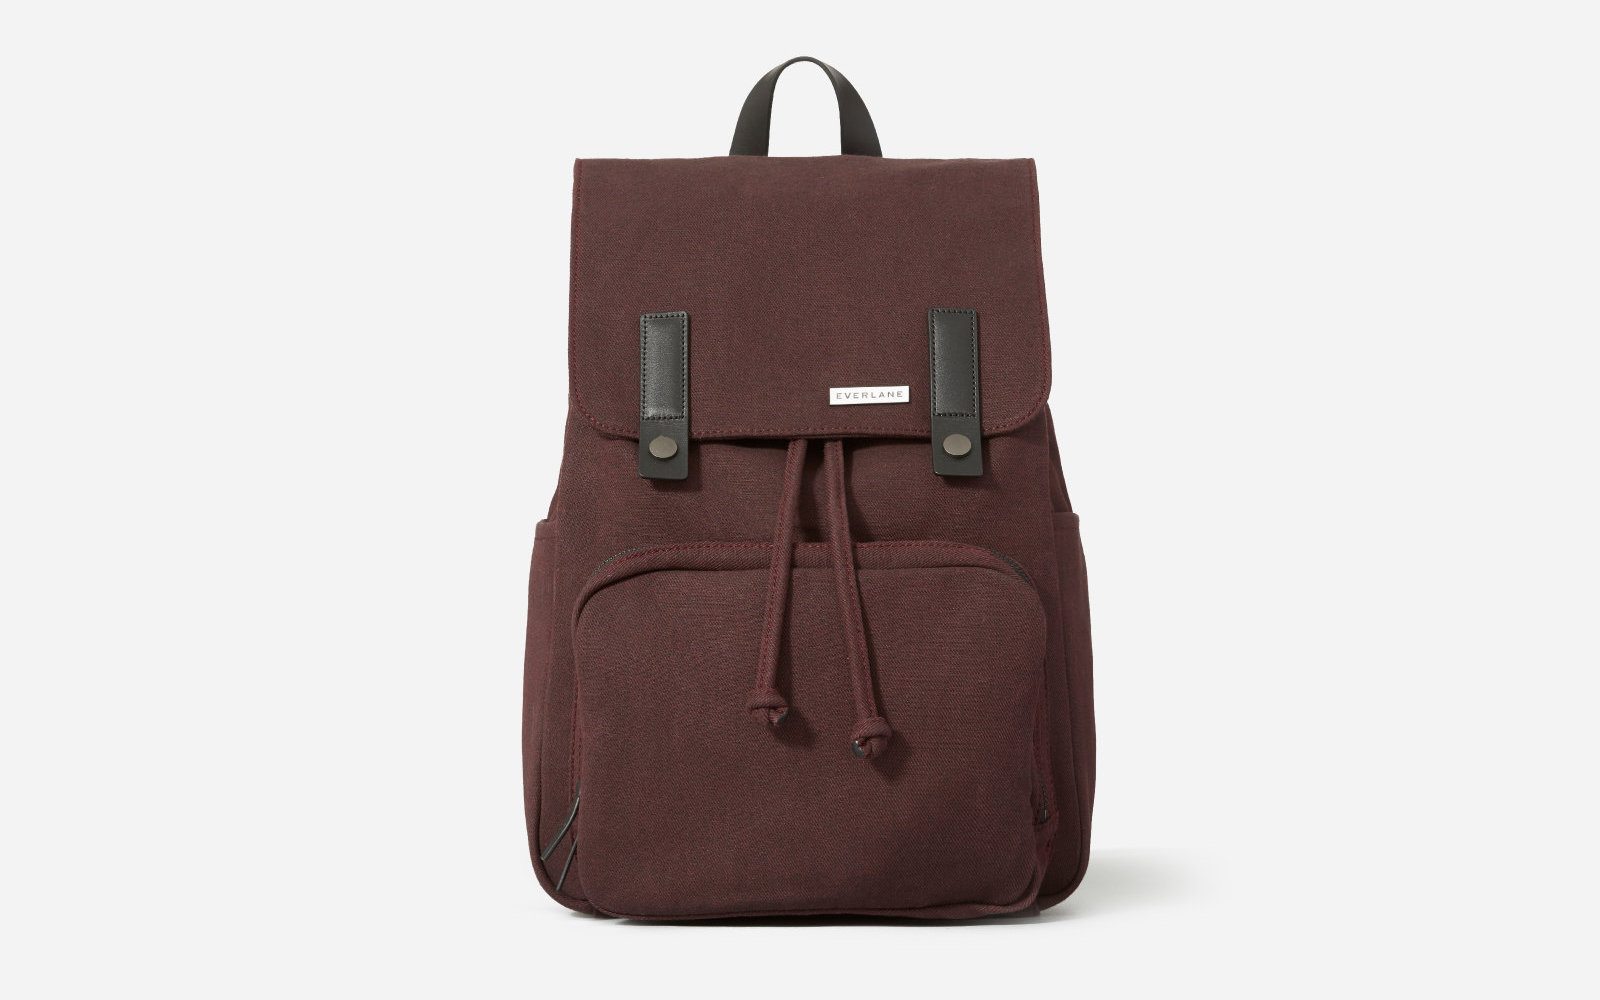 65ba87691970 The Most Stylish Travel Backpacks For Women